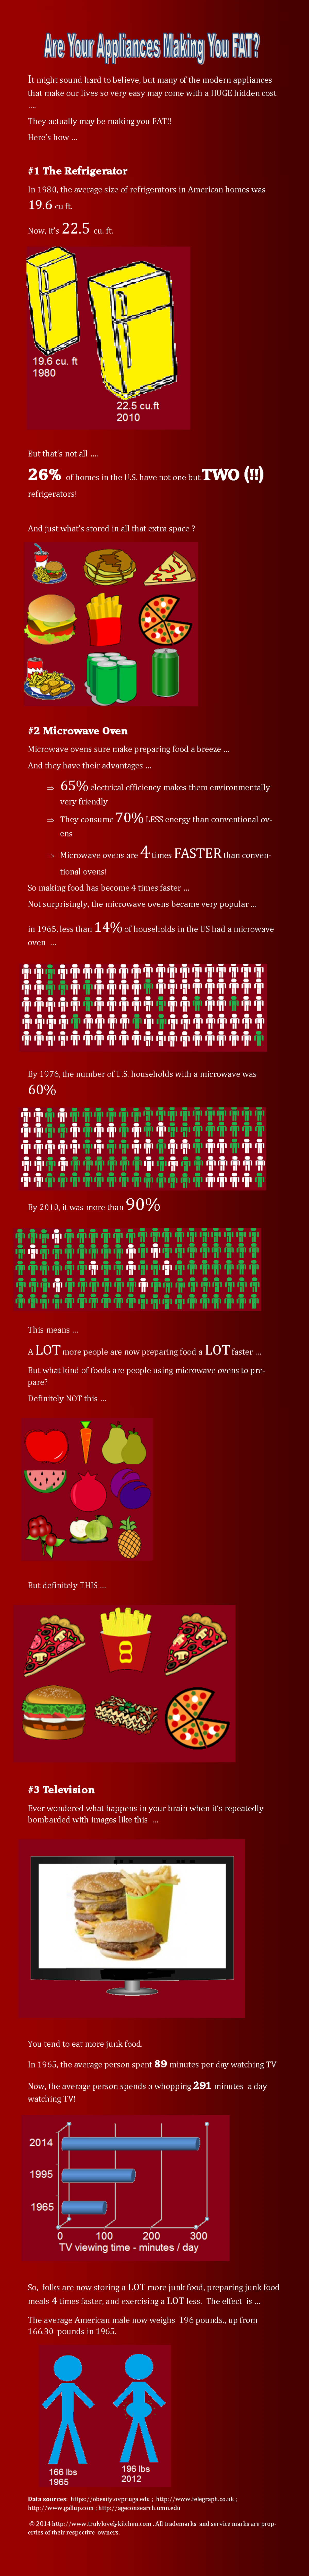 Are Your Appliances Making You Fat? Infographic